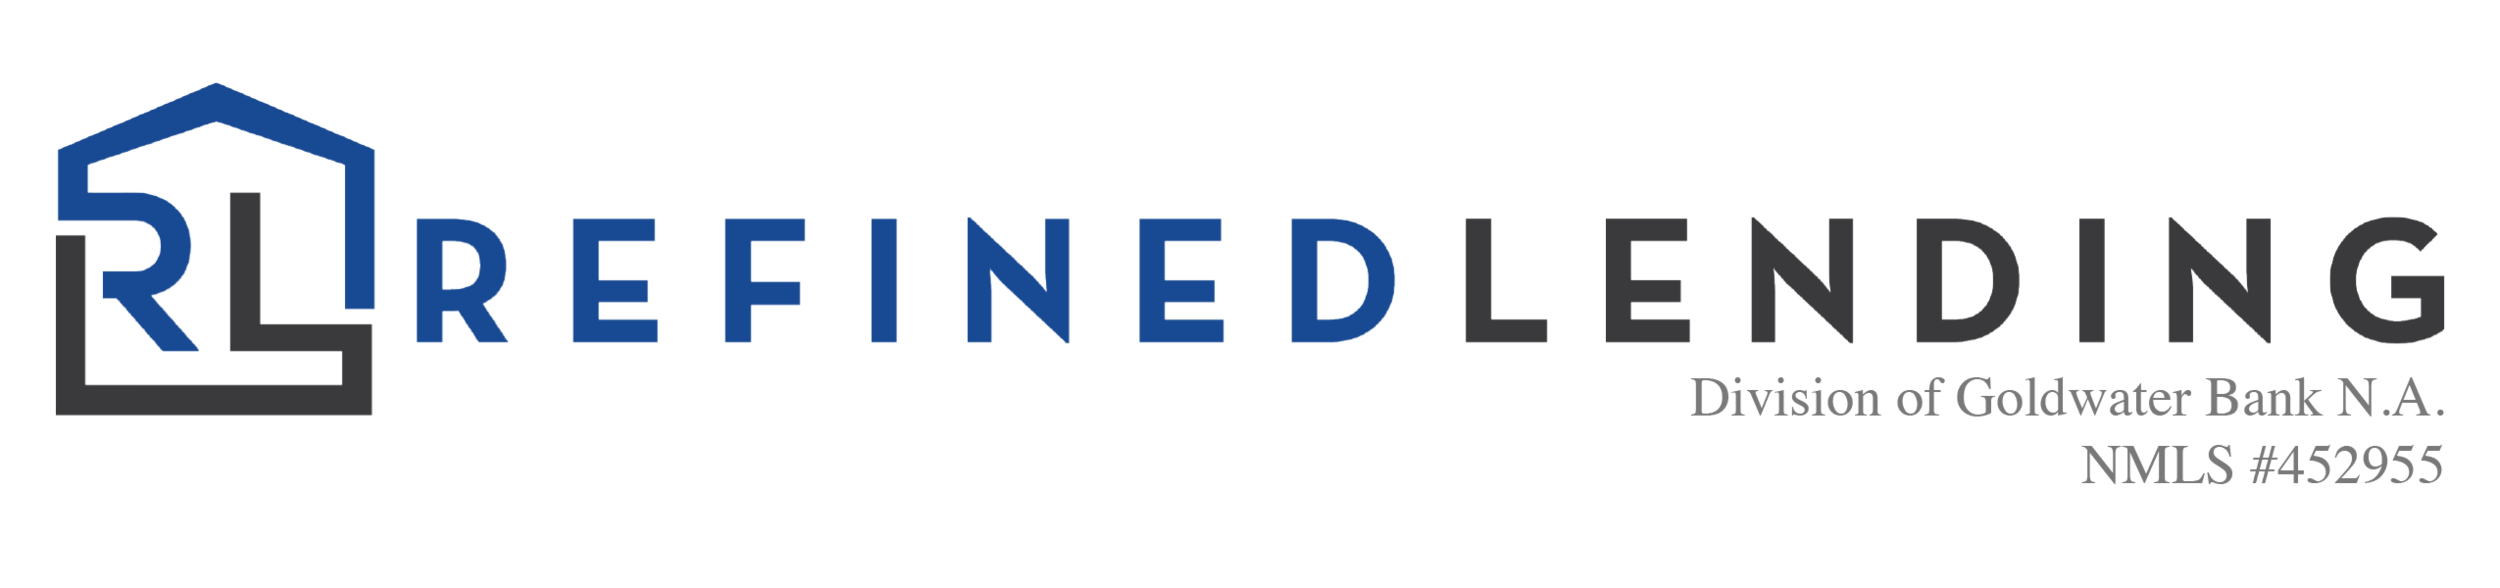 Refined Logo with NMLS#.png